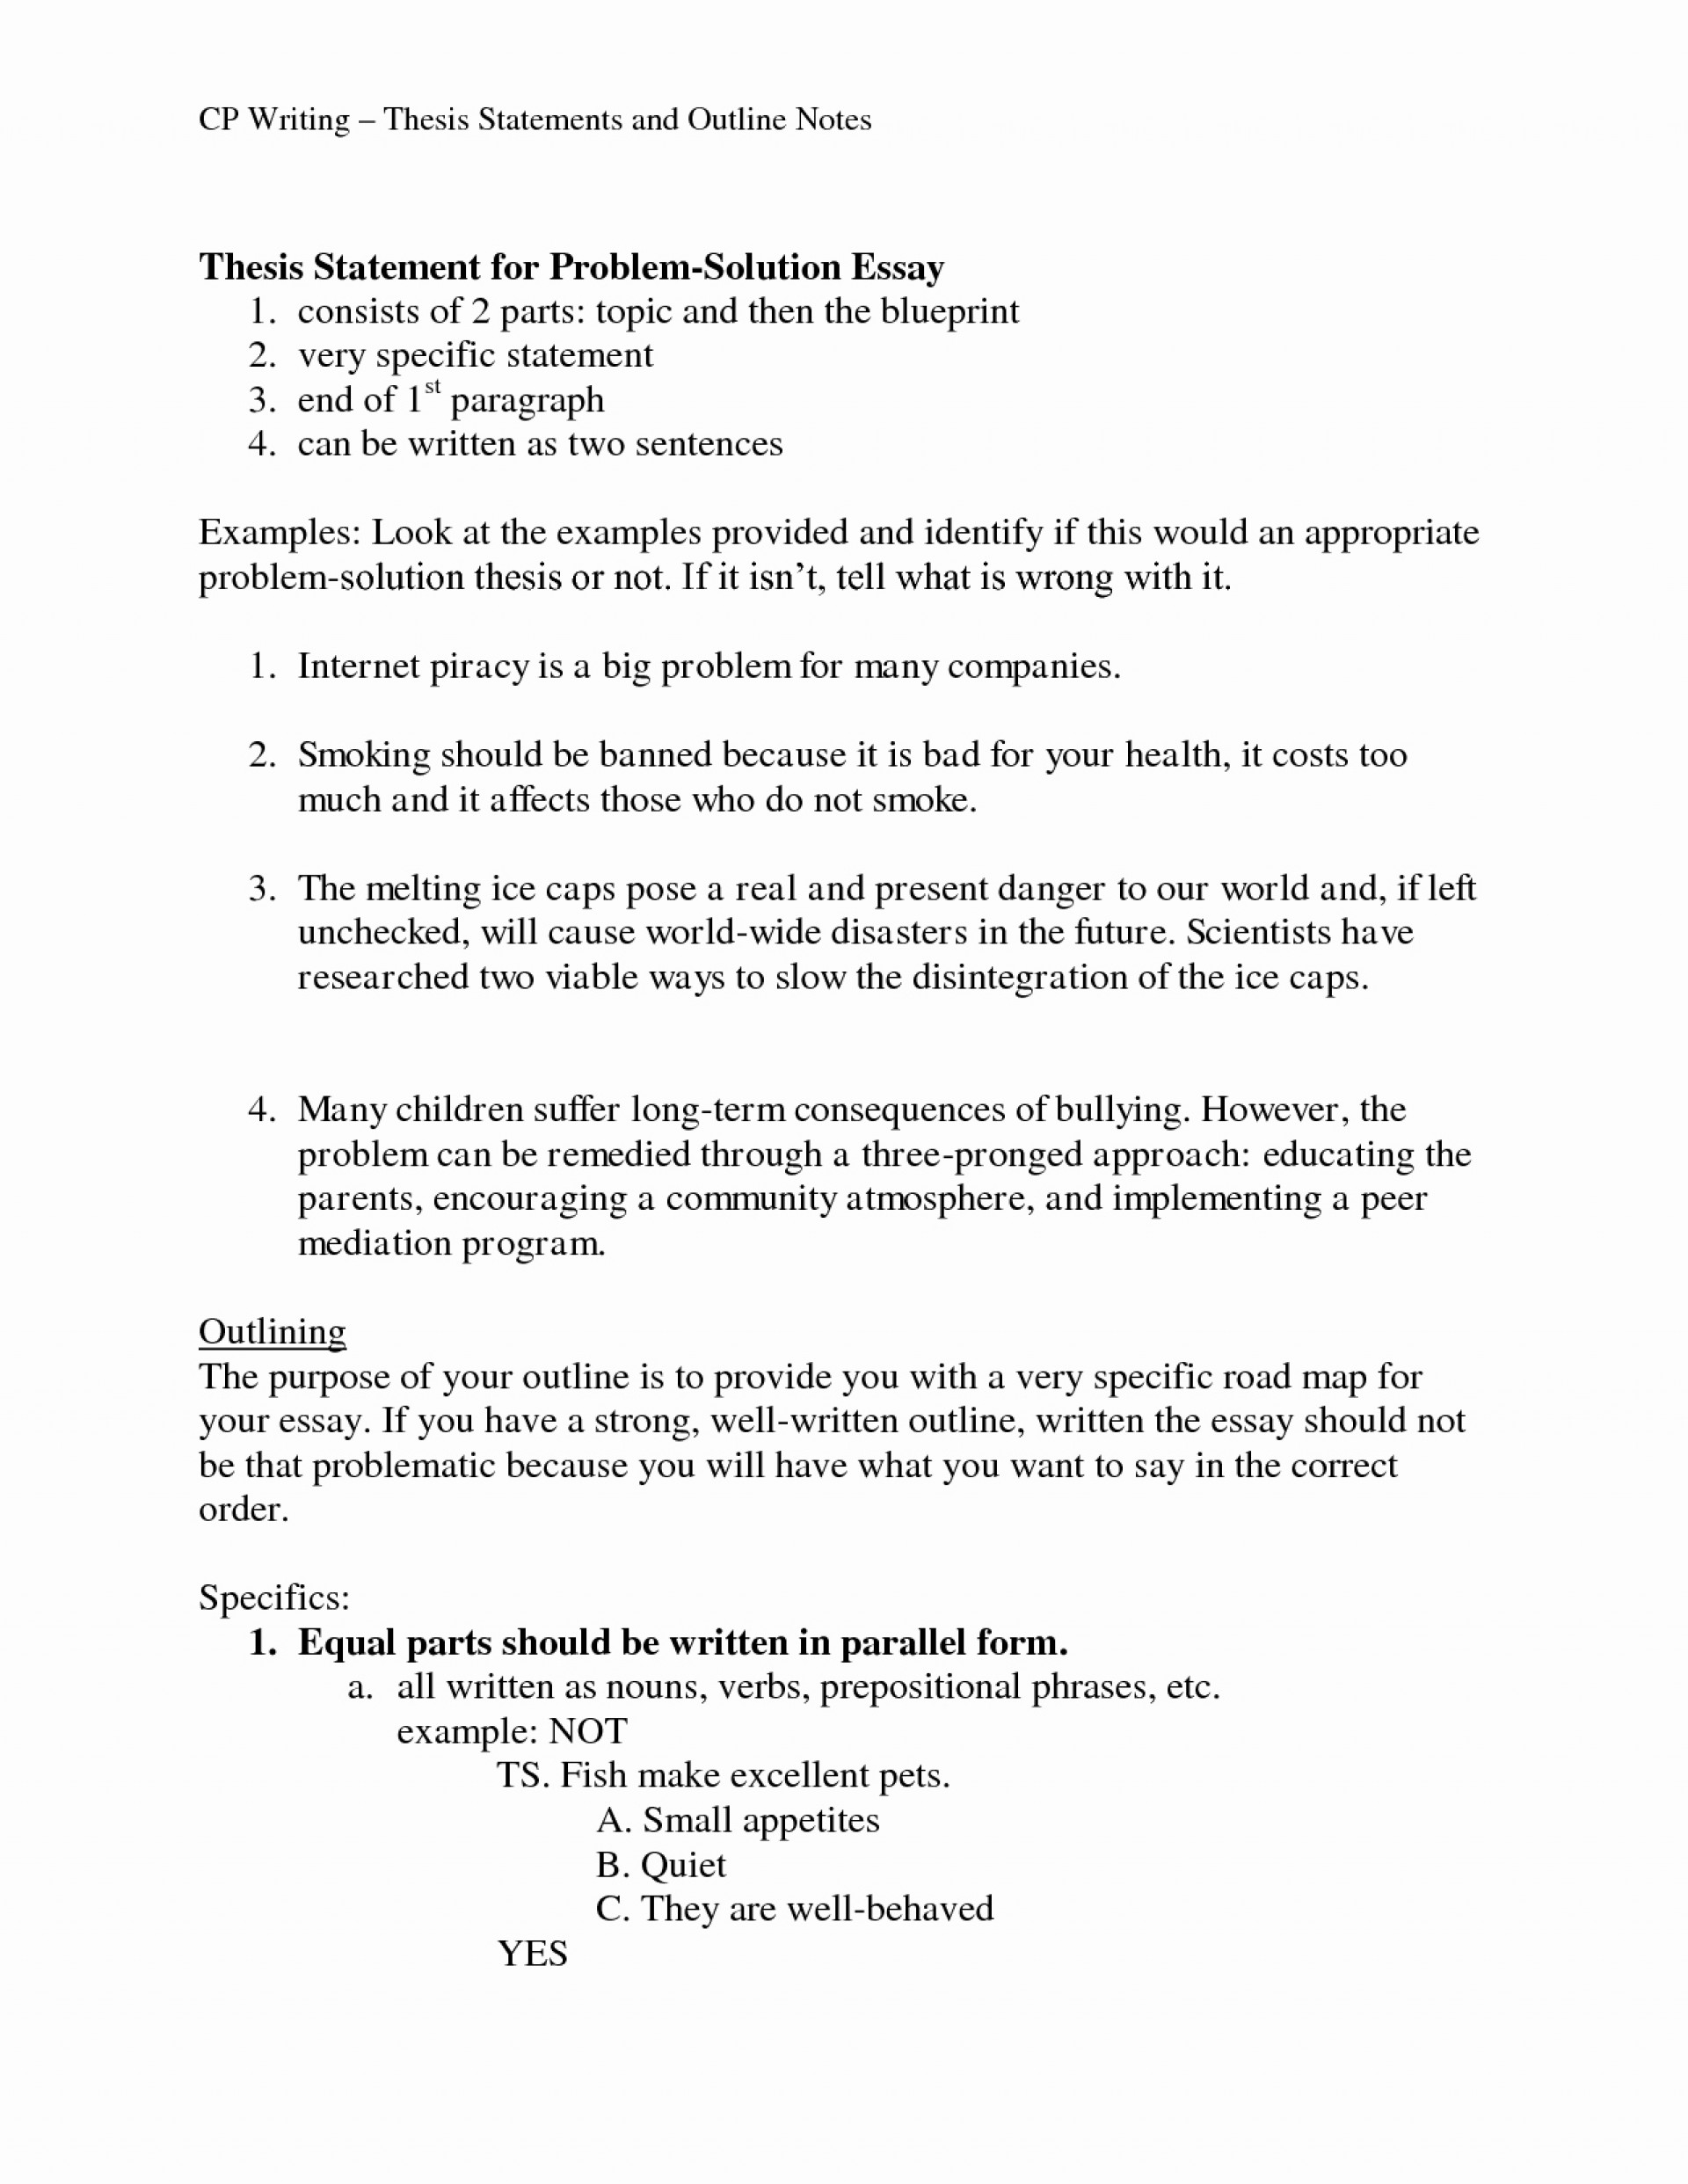 002 Research Paper Example Of Statement The Problem In About Bullyingrrative Paragraph Examples Myself Inspirational Argumentative Essay Papers Sample An With Family Unusual Bullying Cyber 1920